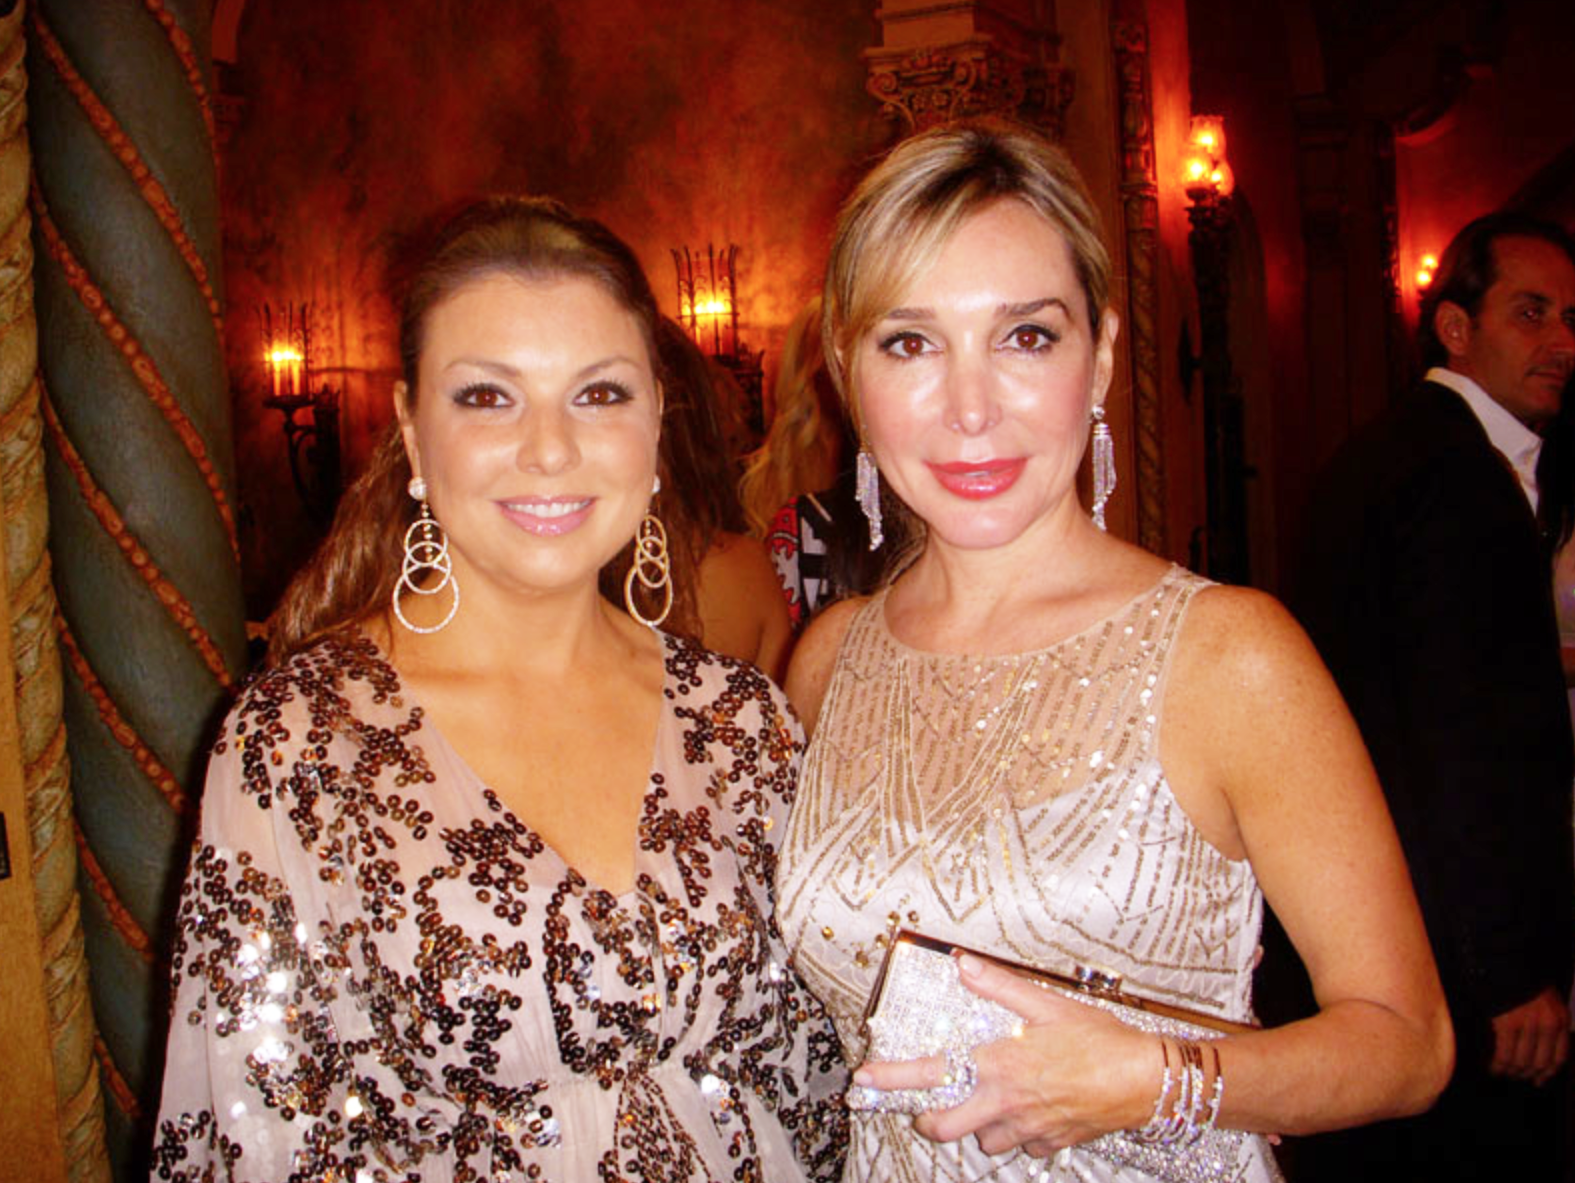 Marysol Patton wearing 'Deco Diamonds' with Christina Termine, owner/designer of 'Diamonds On The Key' wearing 'Circles' diamond earrings.